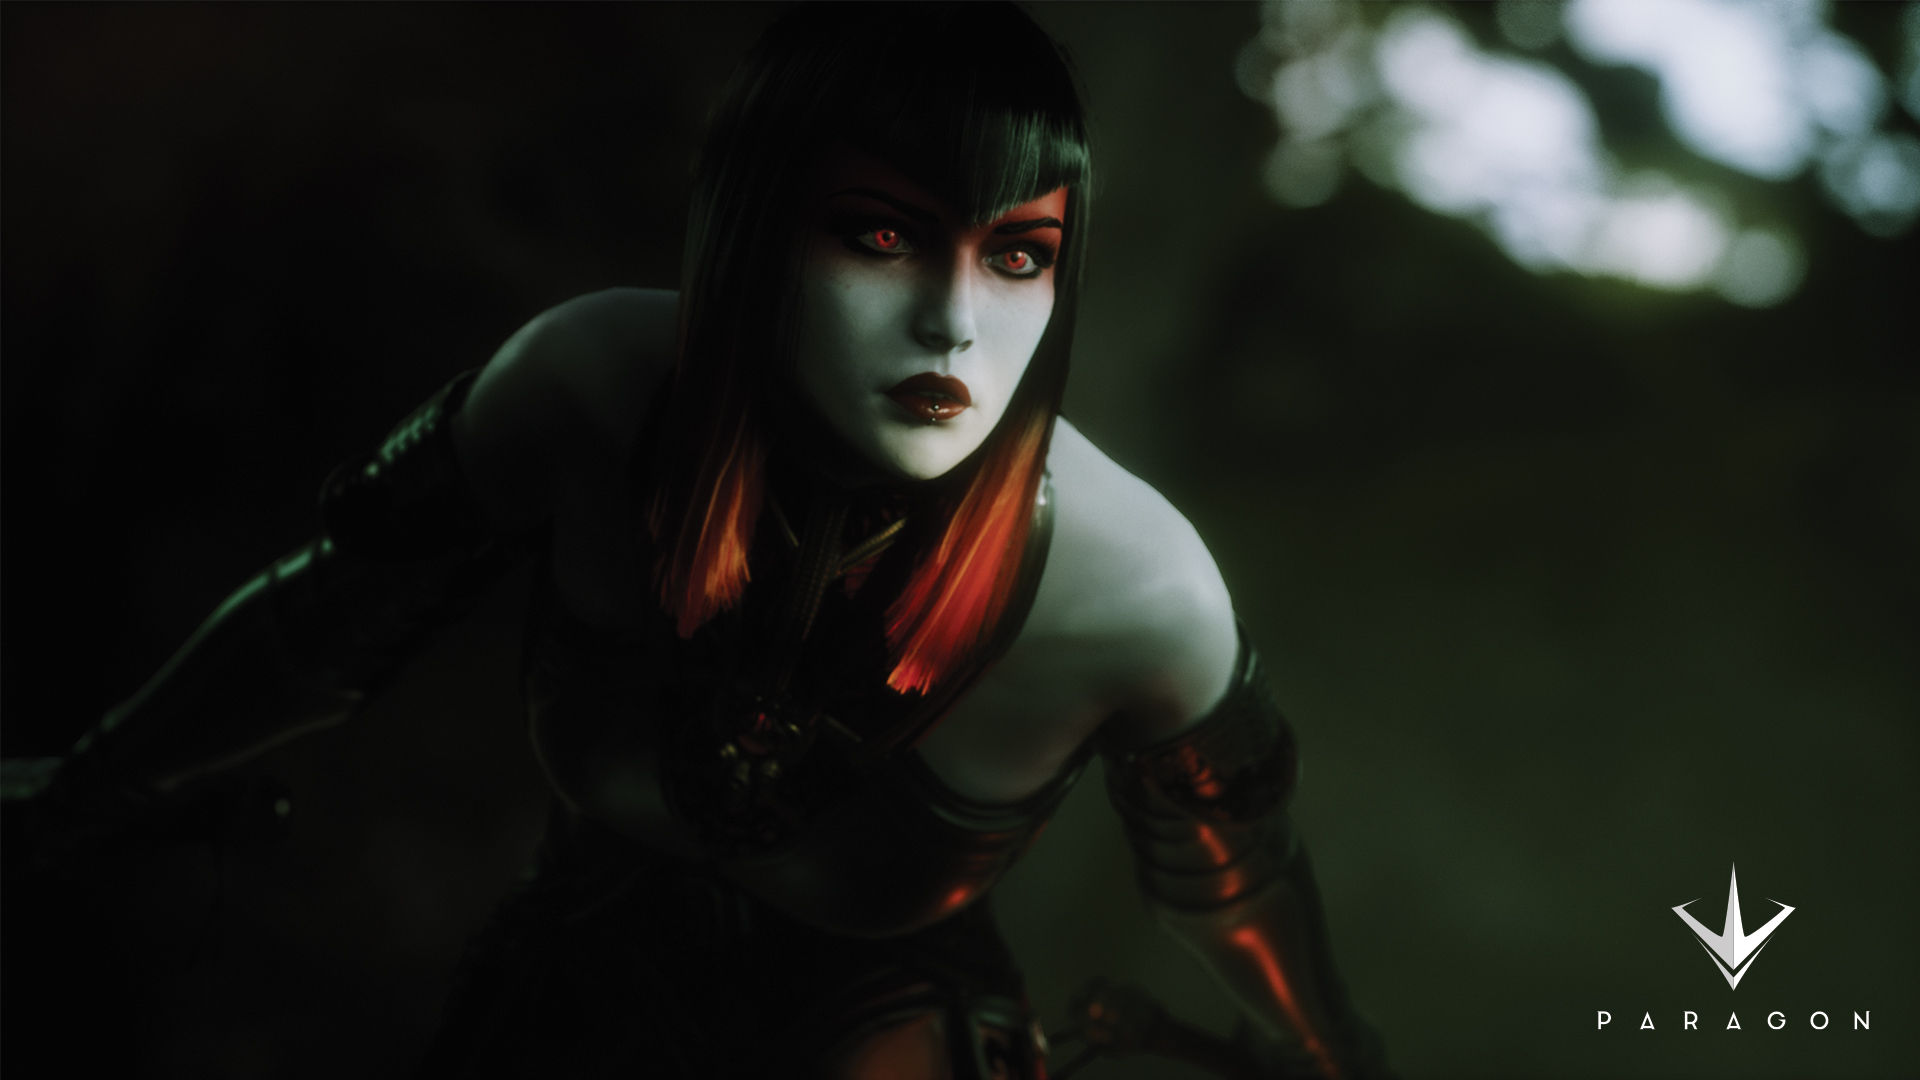 Paragon%2Fblog%2Fnew-hero-reveal-countess%2FCountess_Hero_Screenshot-1920x1080-a44967154e261ac540a7166038238e3c0262a81a